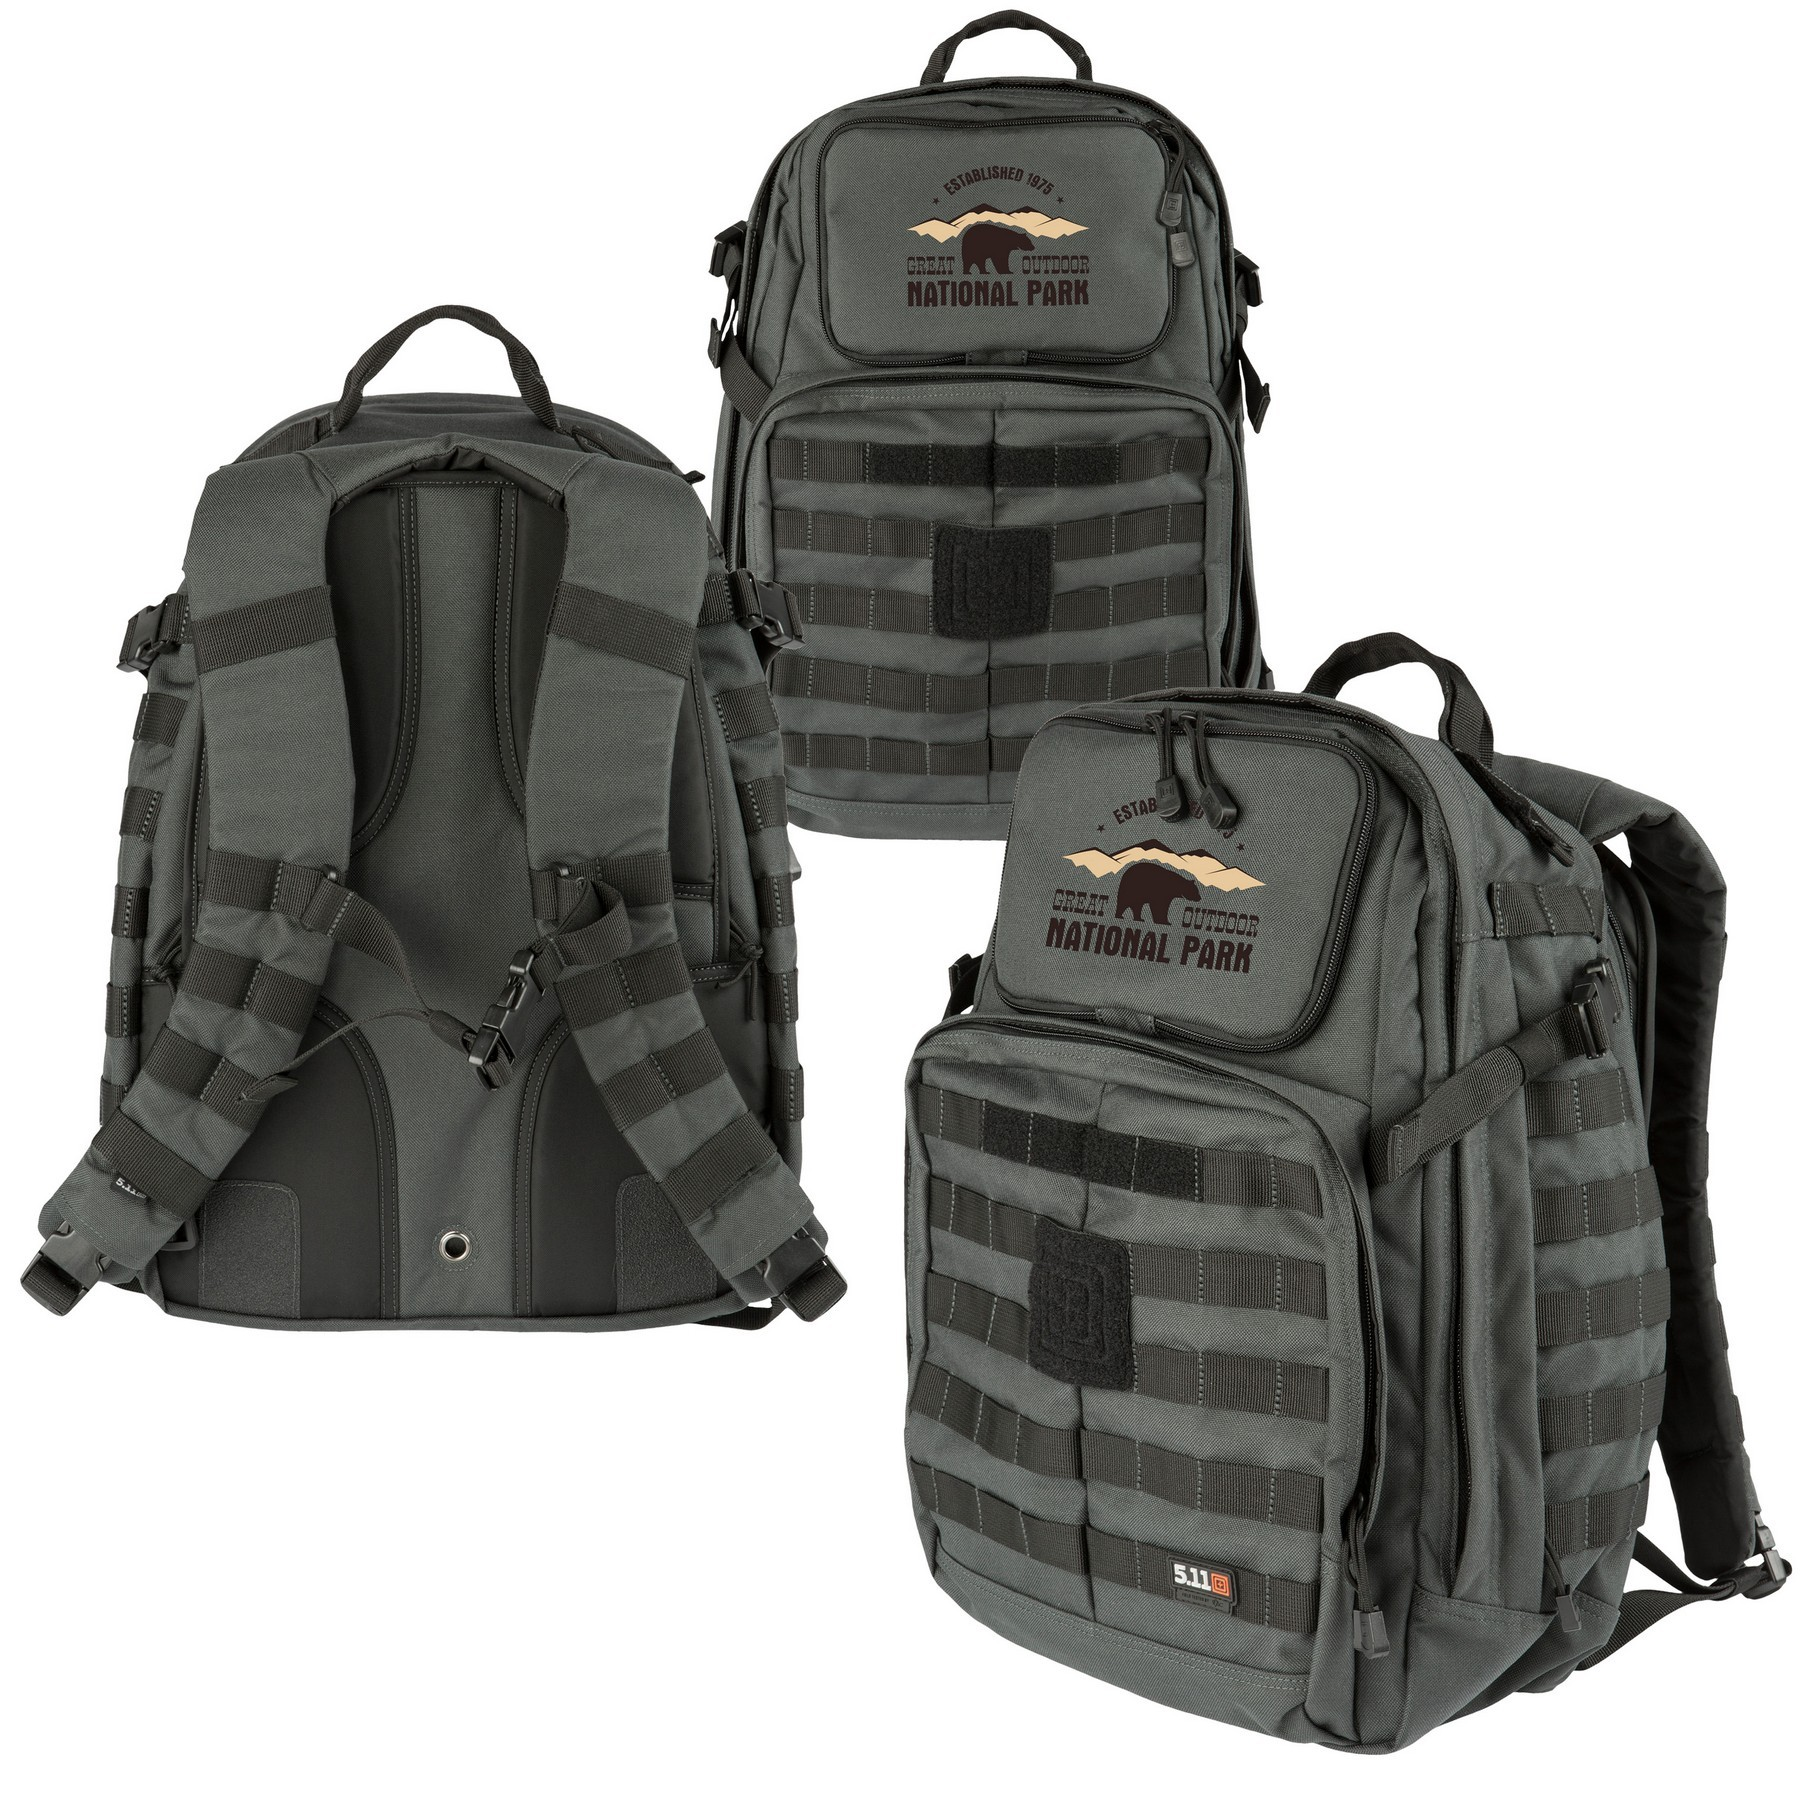 5.11 Tactical® Crush 24 Backpack